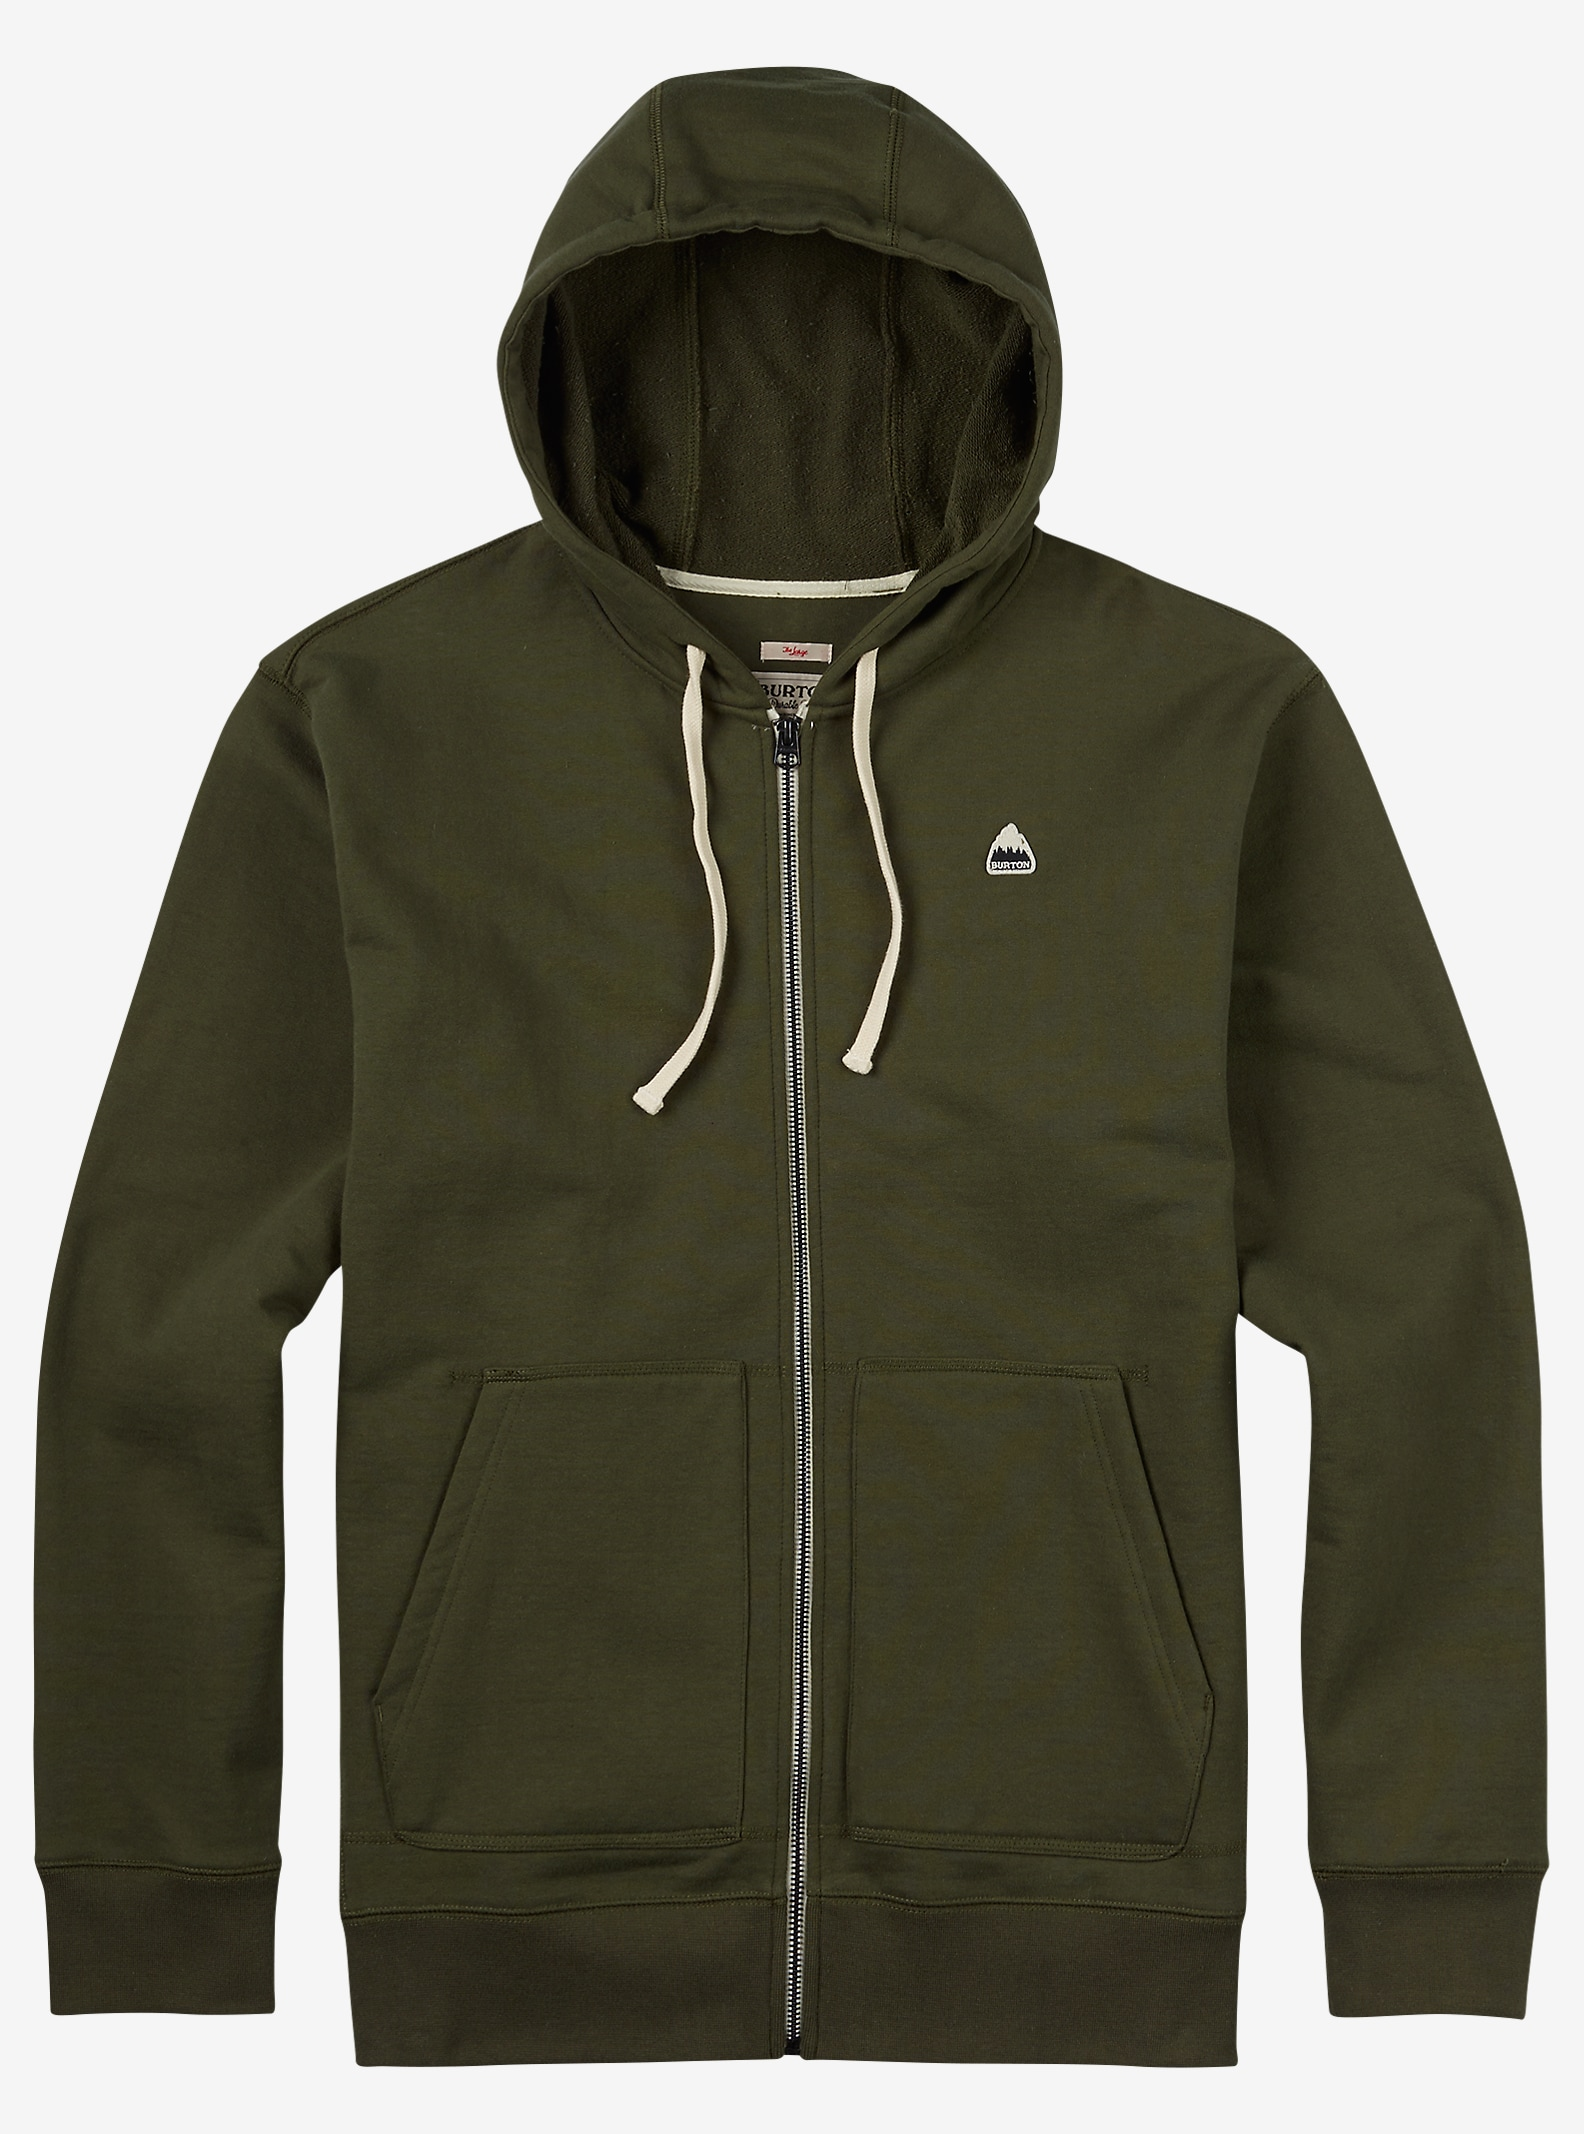 Burton Roe Full-Zip Hoodie shown in Keef